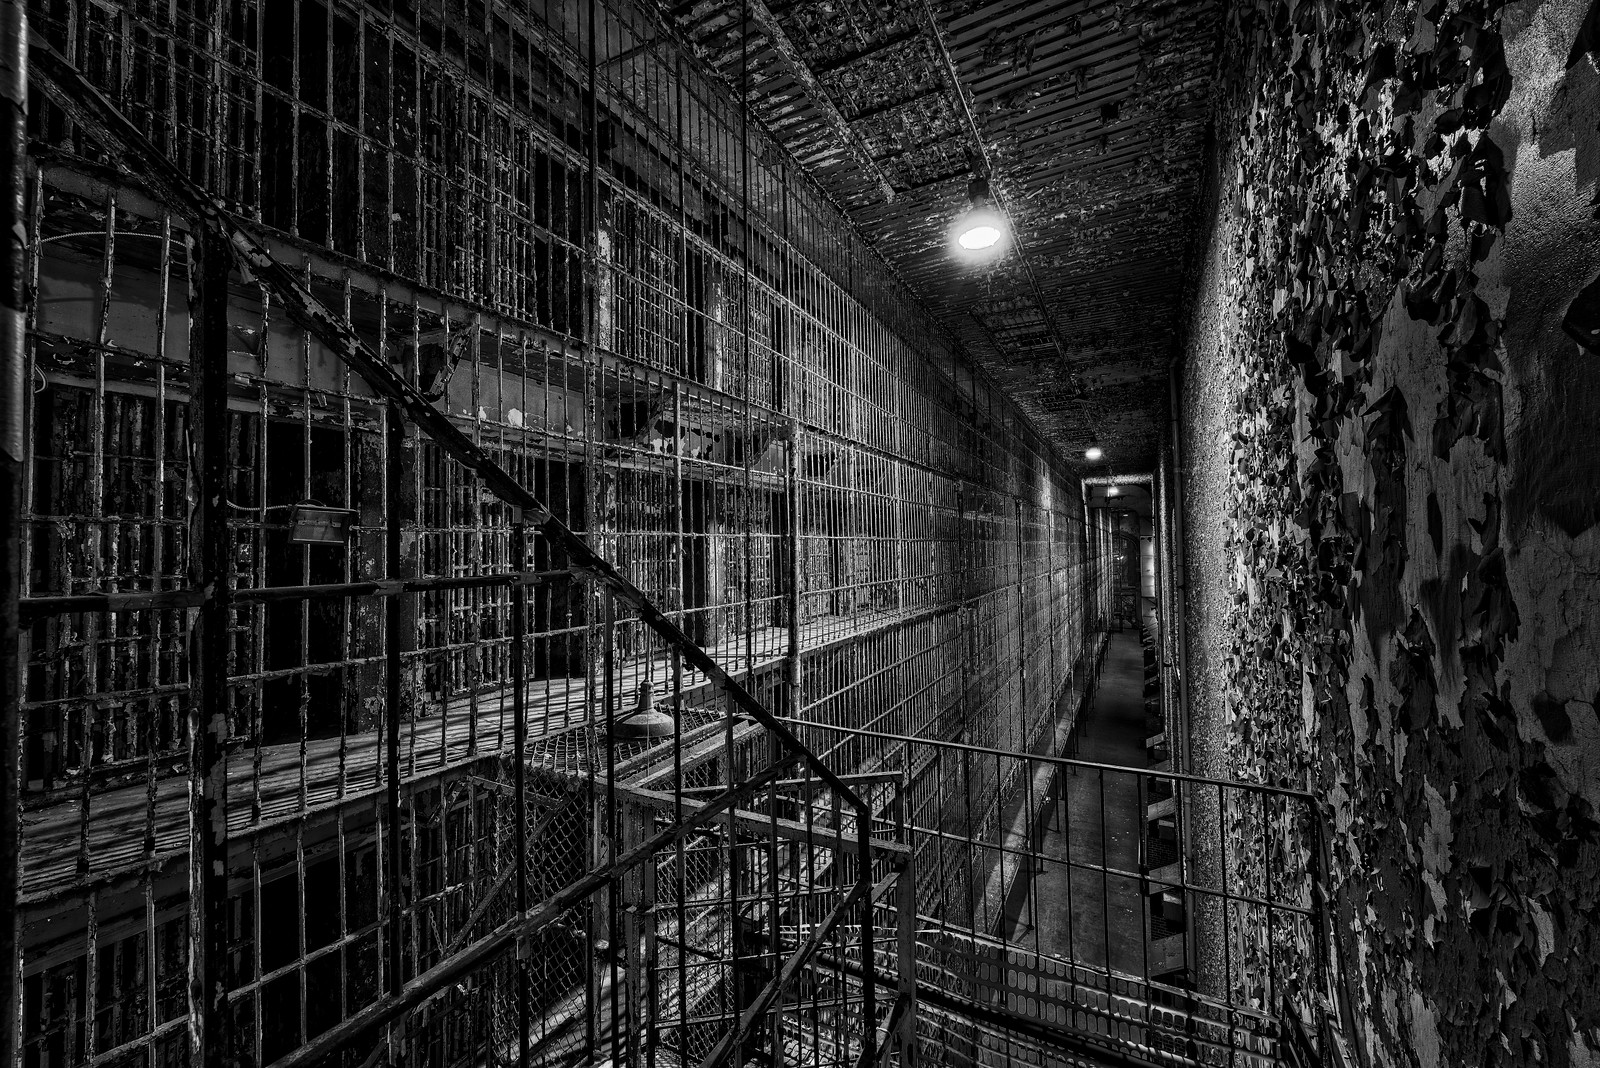 Ohio State Reformatory cells